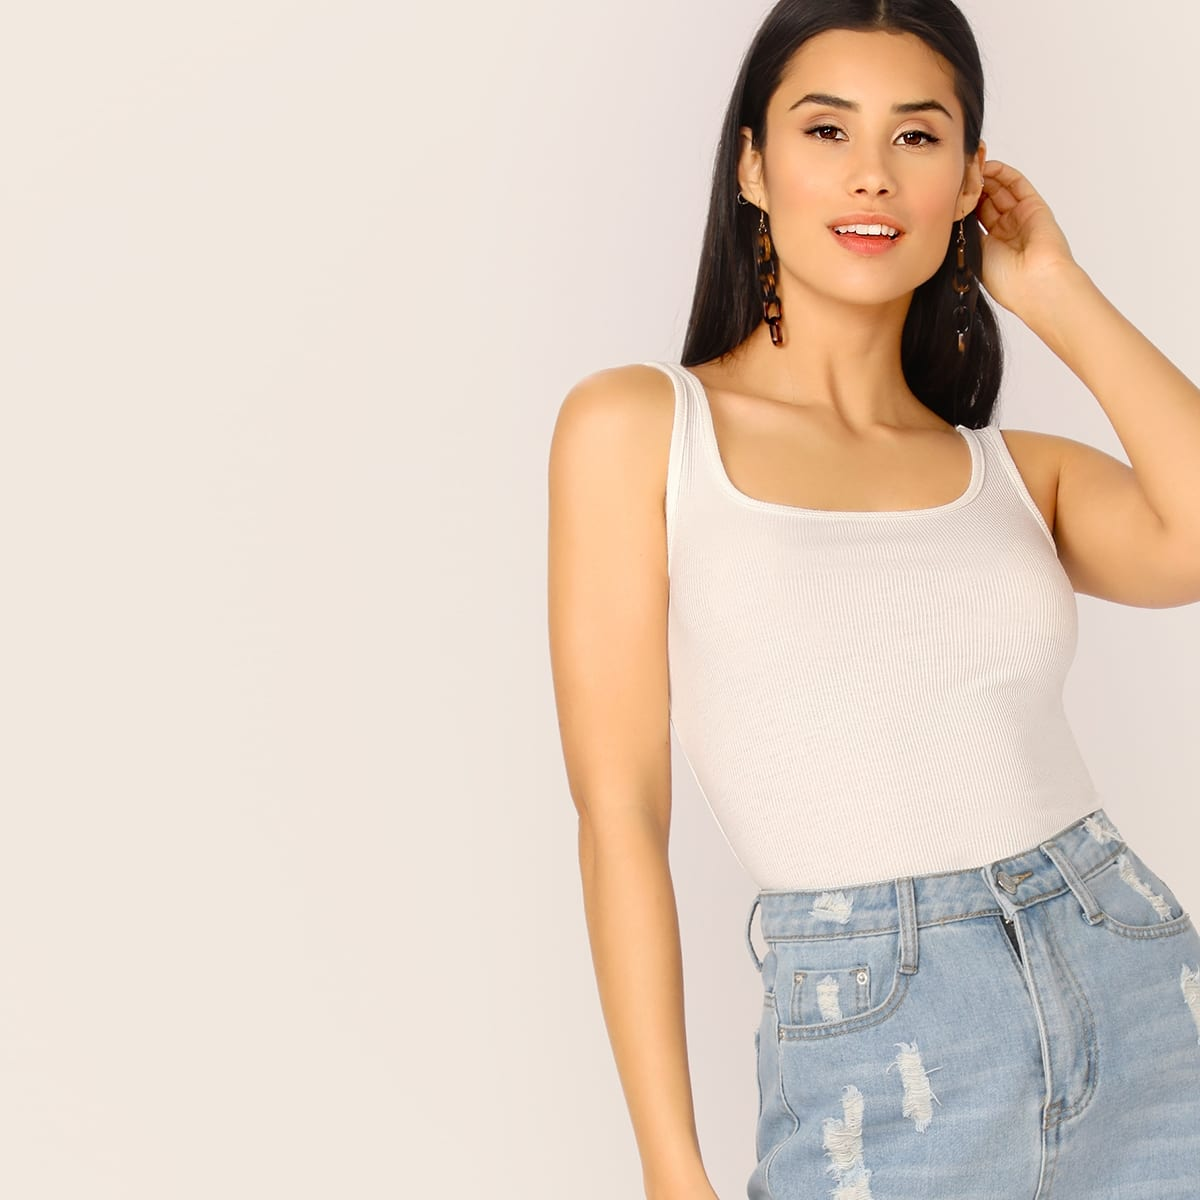 SHEIN coupon: Scoop Neck Solid Skinny Tank Top